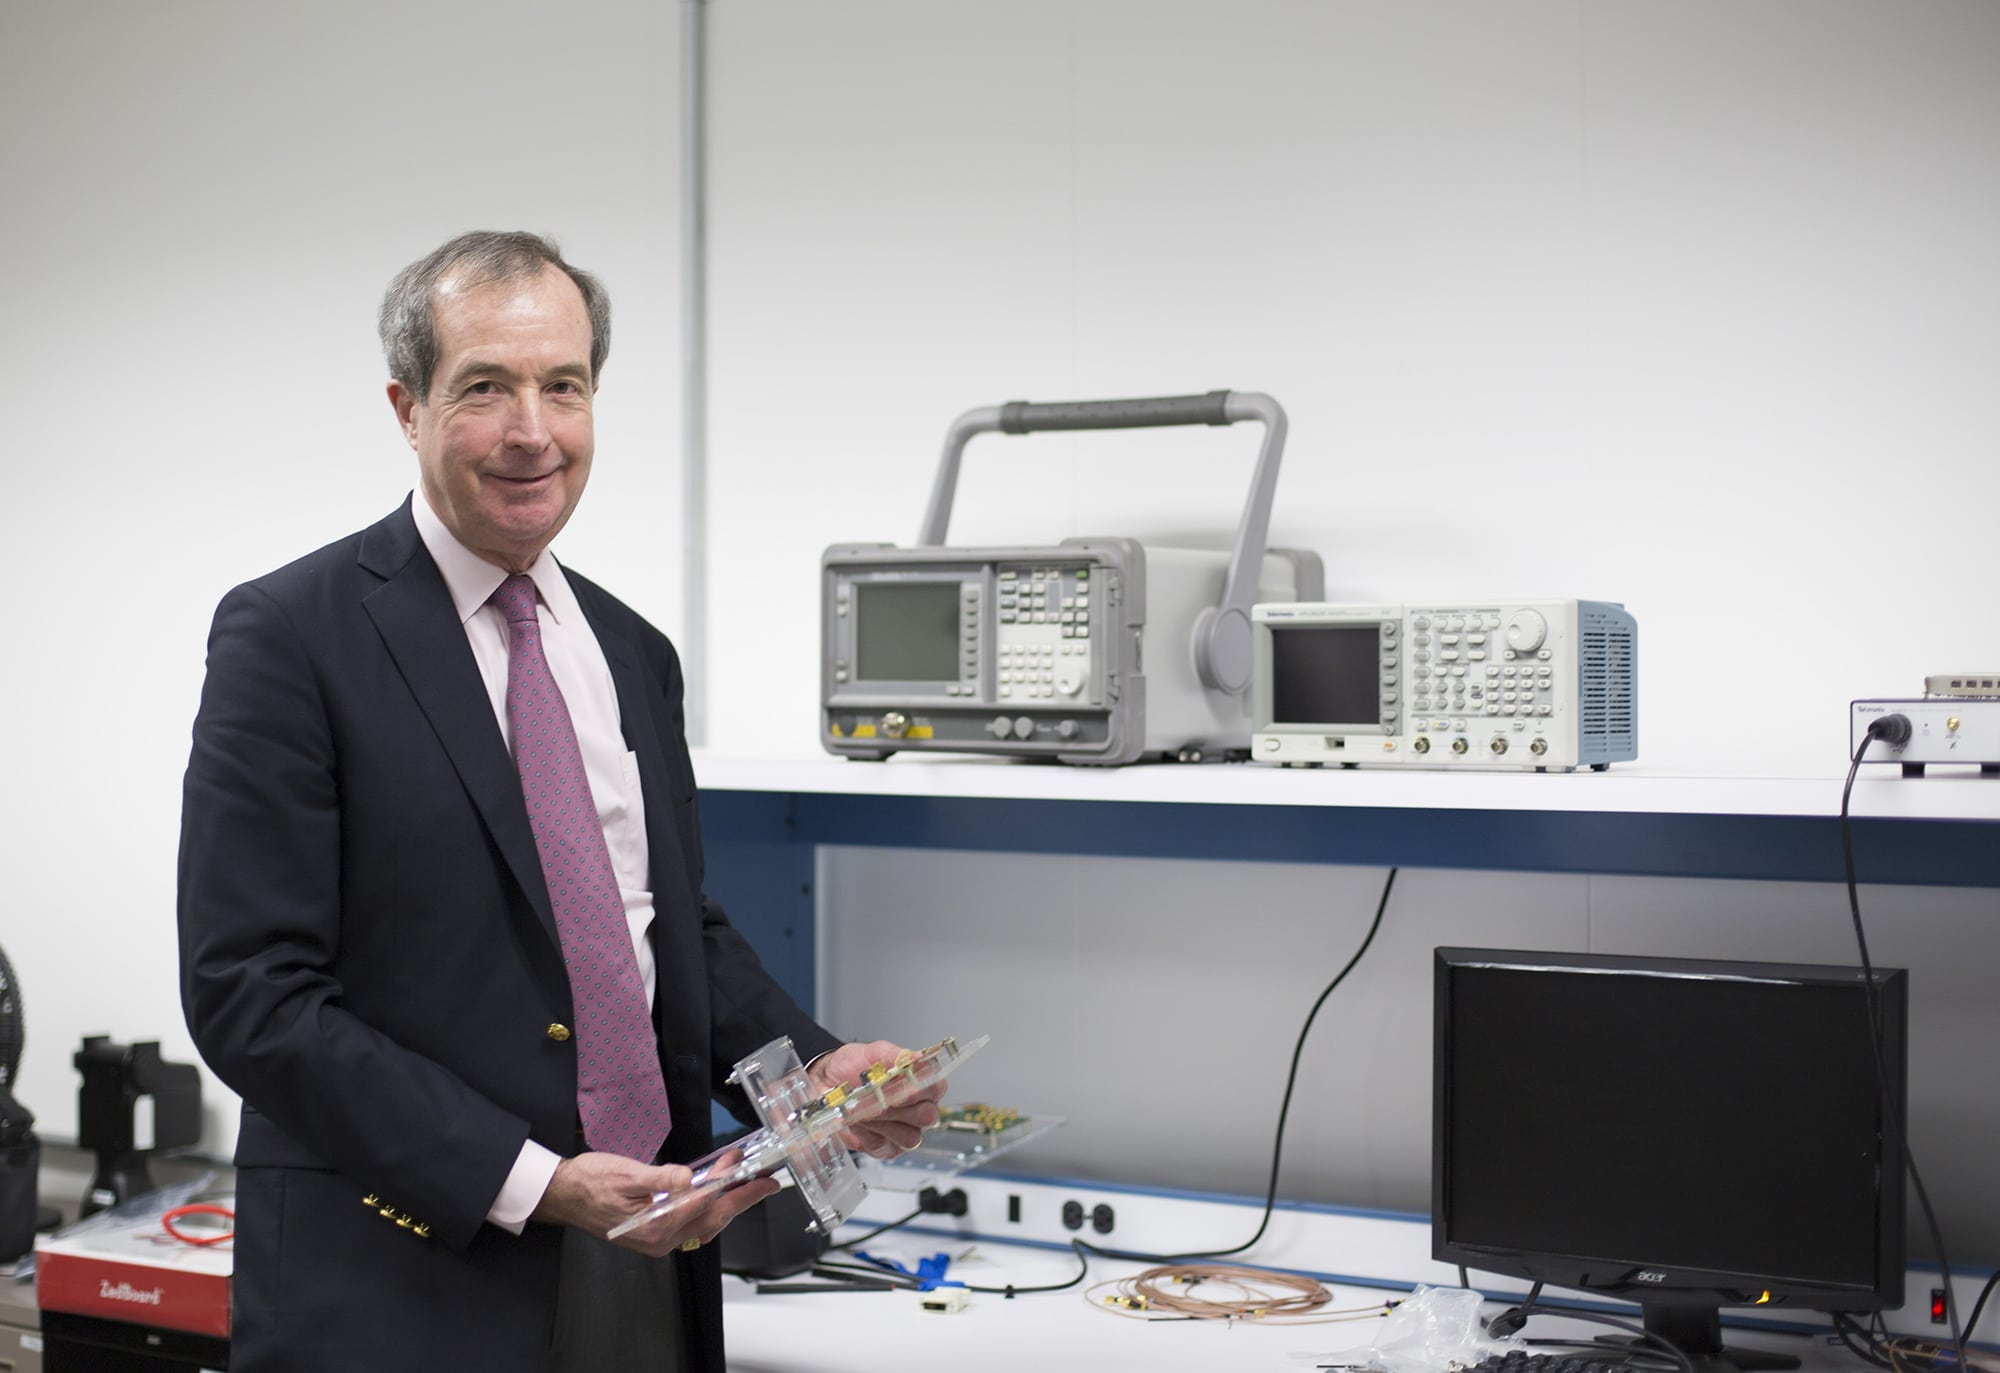 Wireless technology innovator Thomas Marzetta elected to the National Academy of Engineering